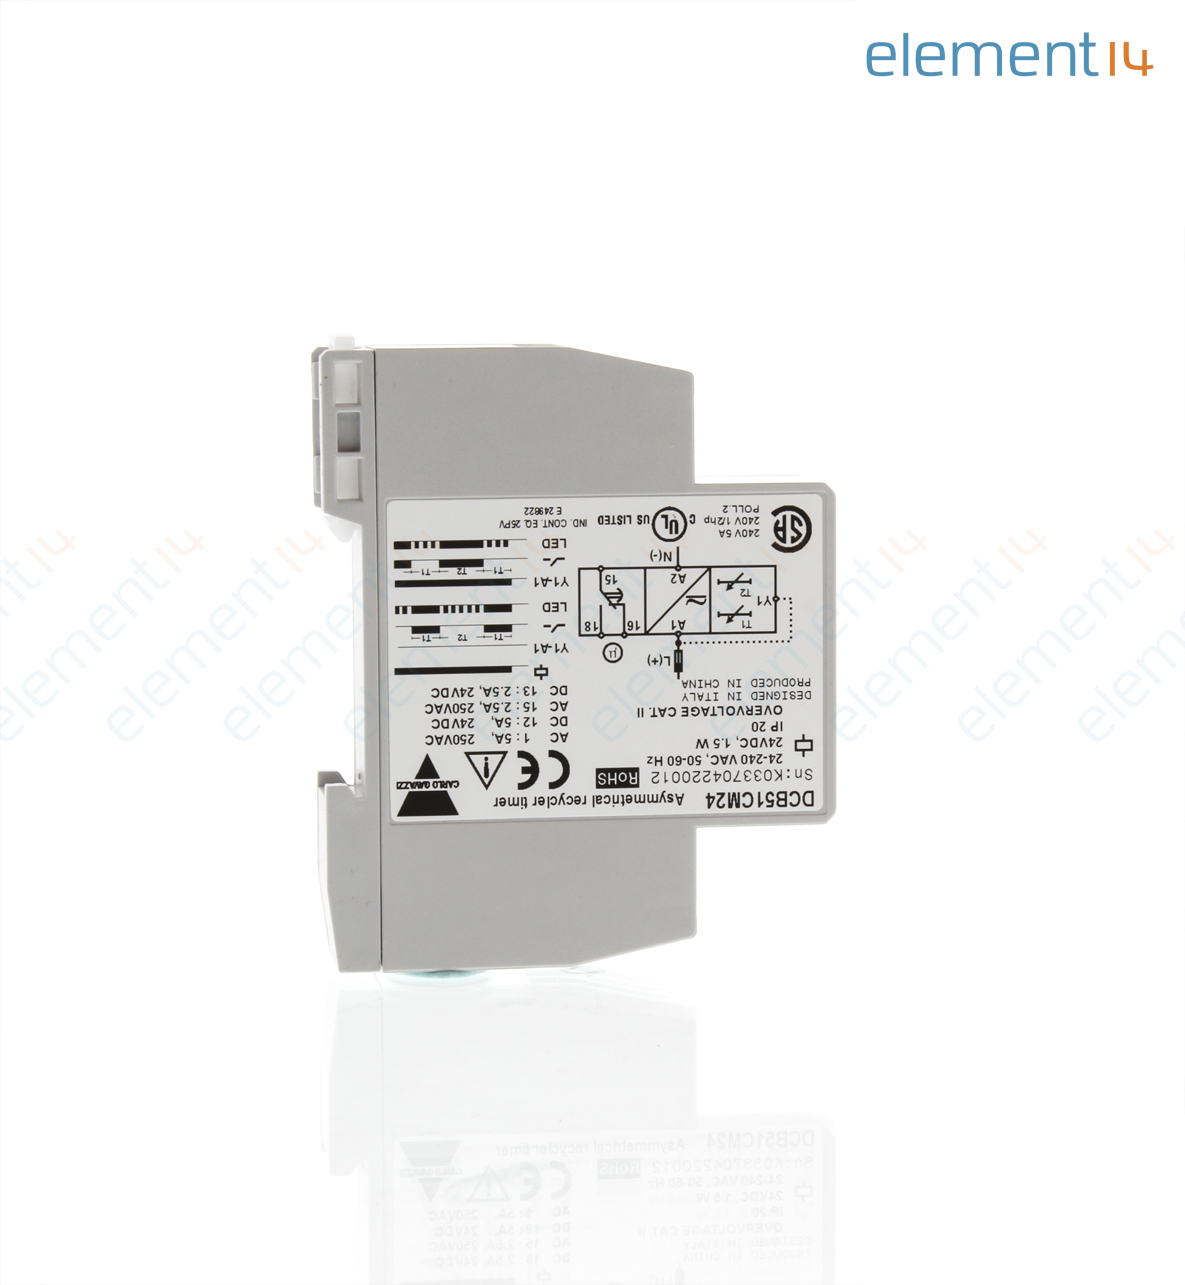 Dcb51cm24 Carlo Gavazzi Analog Timer Dcb51 Series Asymmetrical Home Circuit Protection Timers Analogue Digital Battery Back Up Recycling 01 S 100 H 7 Ranges 1 Changeover Relay